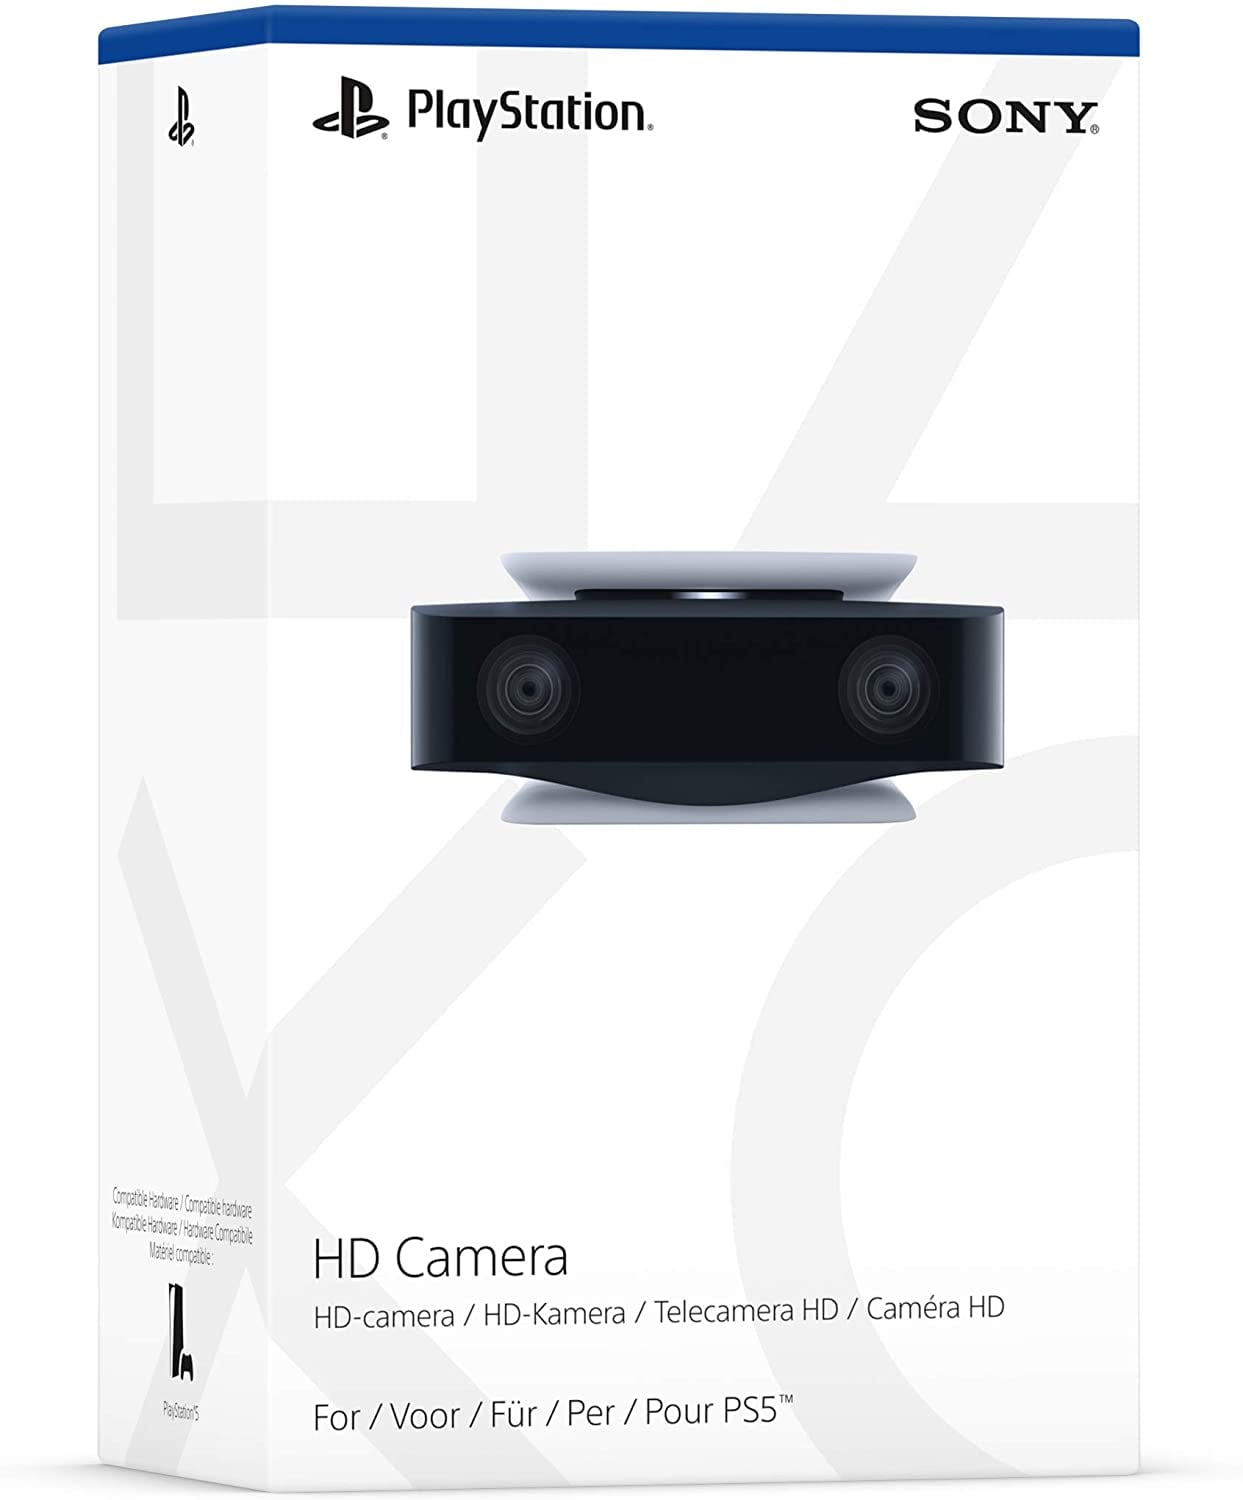 Sony Official Playstation 5 HD Camera (PS5) - 1